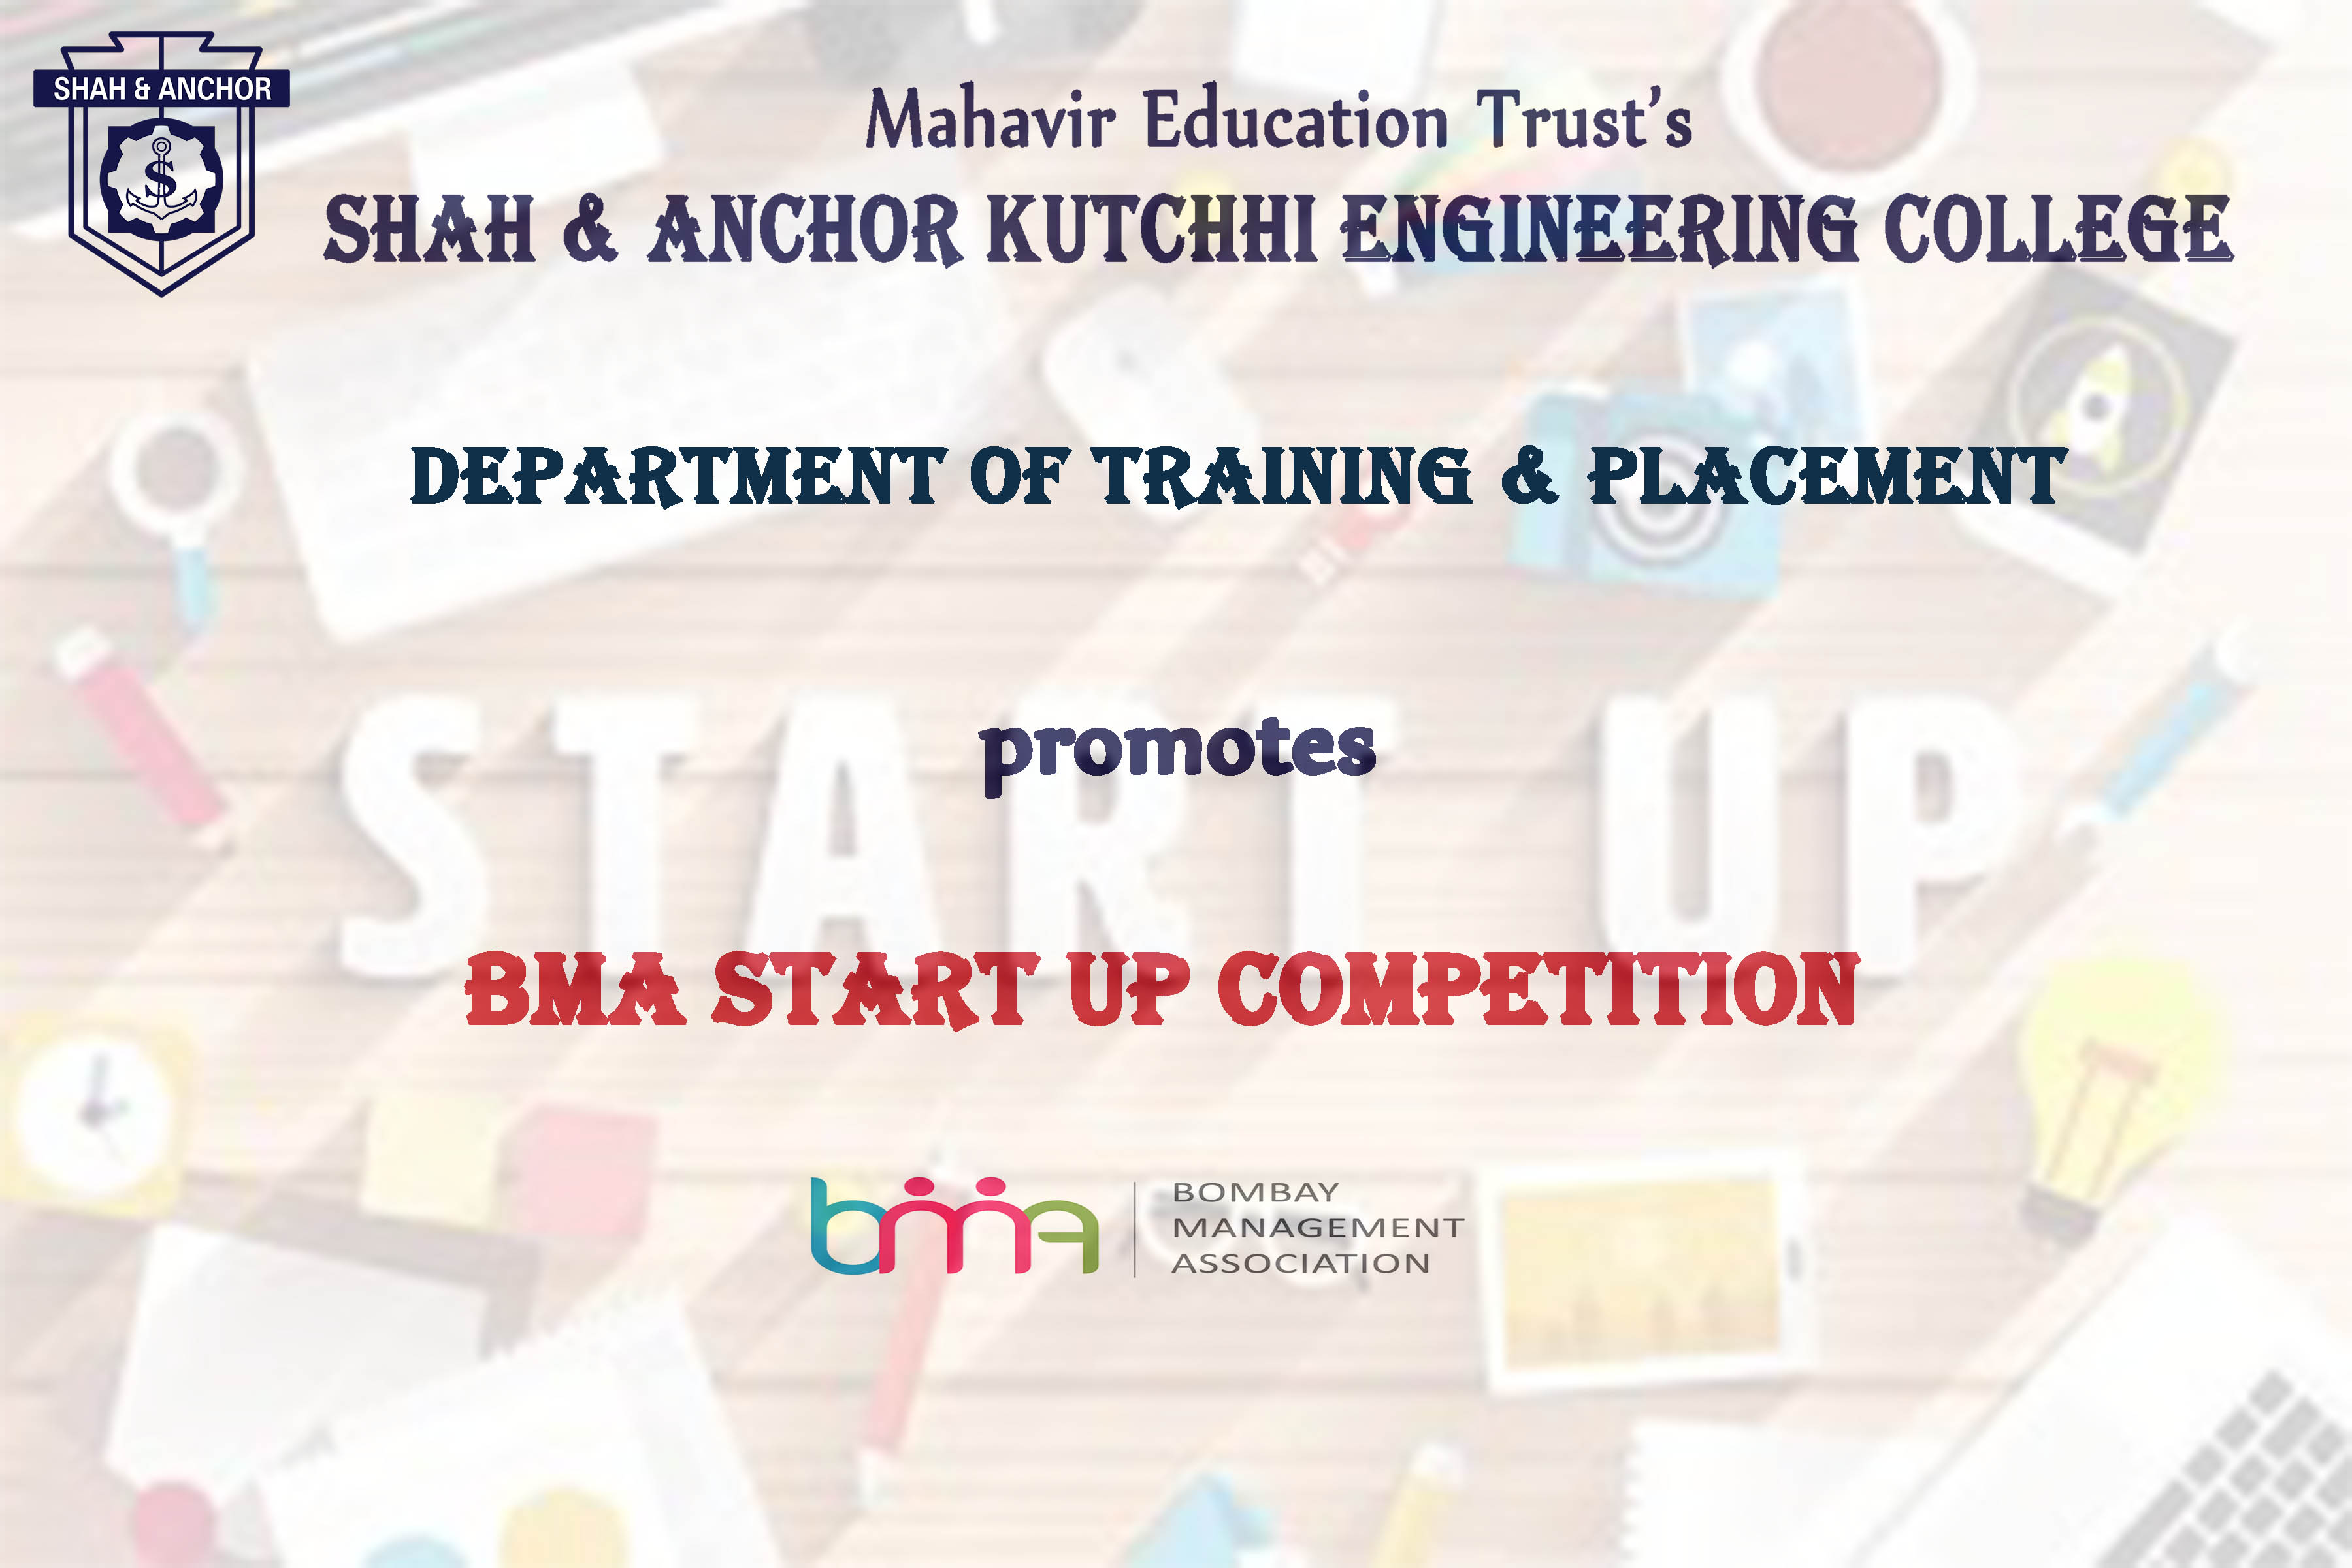 BMA Startup Competition